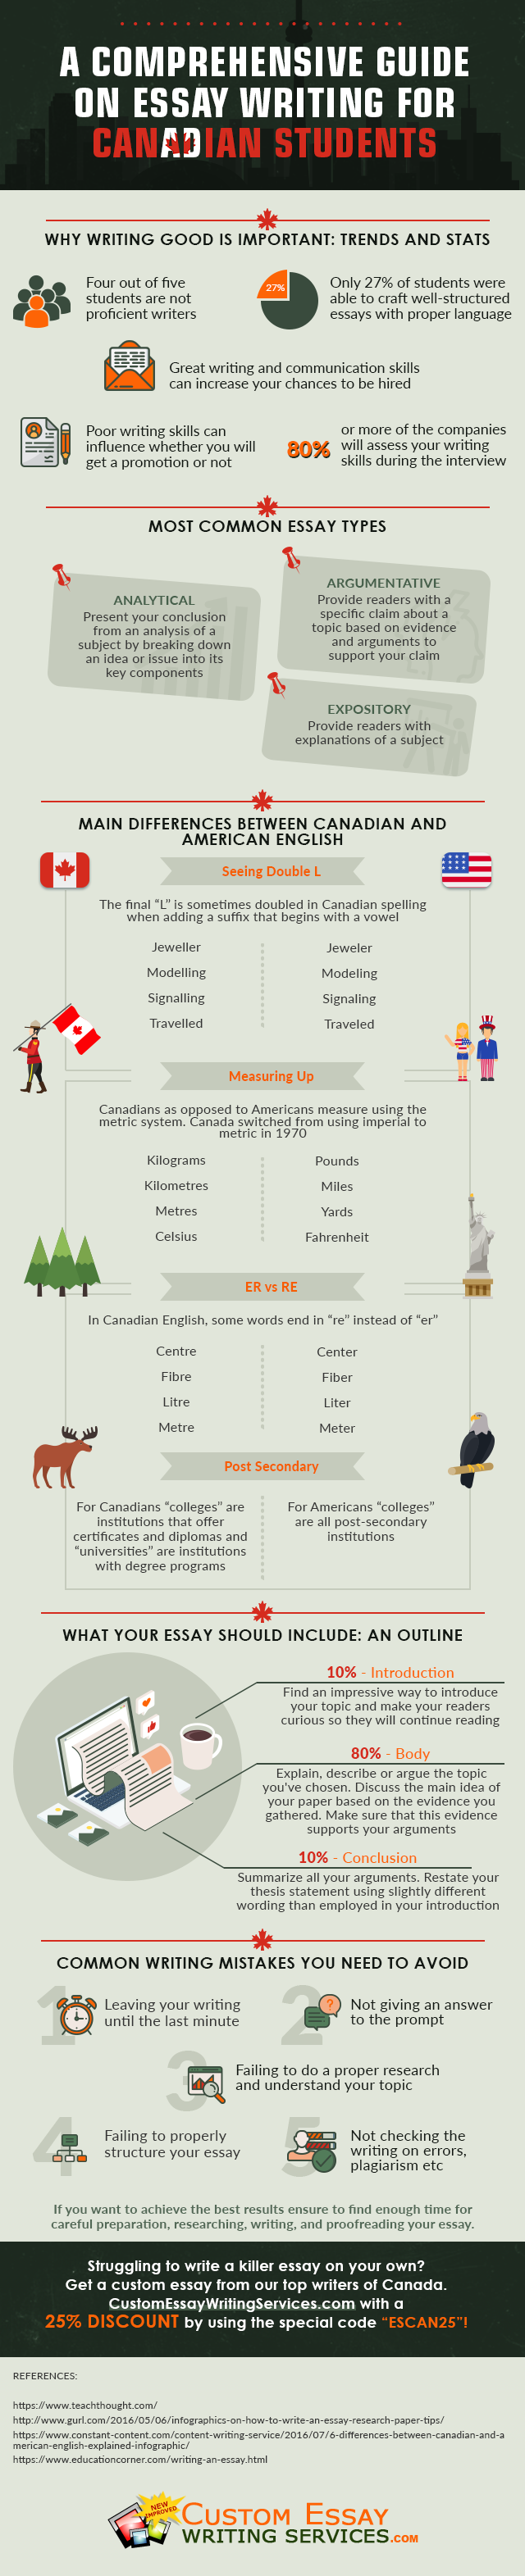 essay-writing-for-canadian-students-infographic-plaza